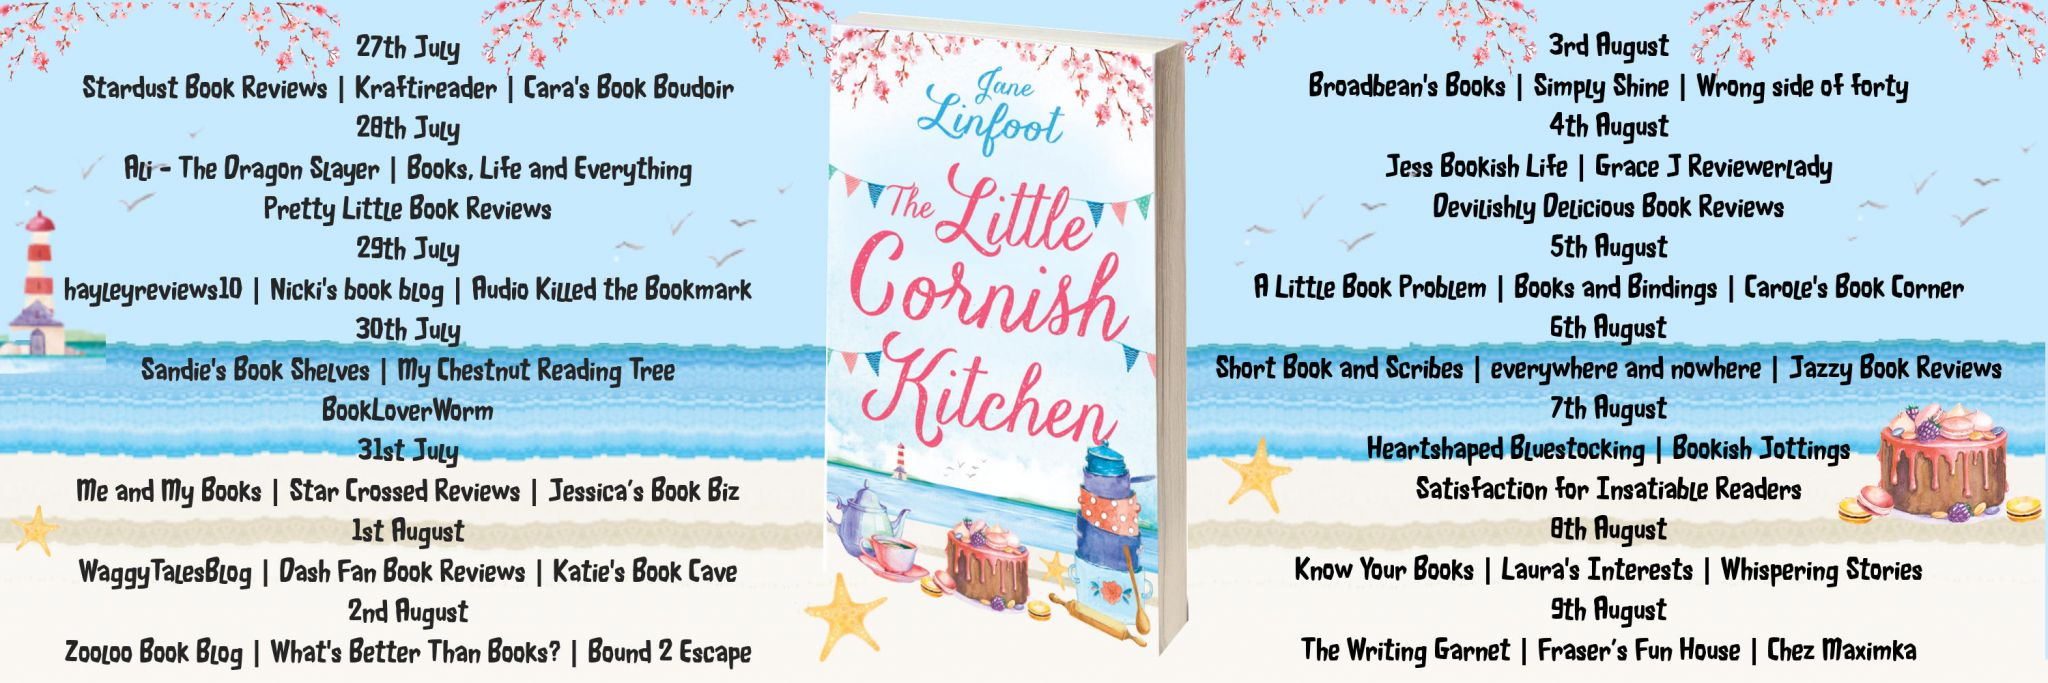 #BookReview of The Little Cornish Kitchen by Jane Linfoot @janelinfoot @rararesources @HarperImpulse #giveaway